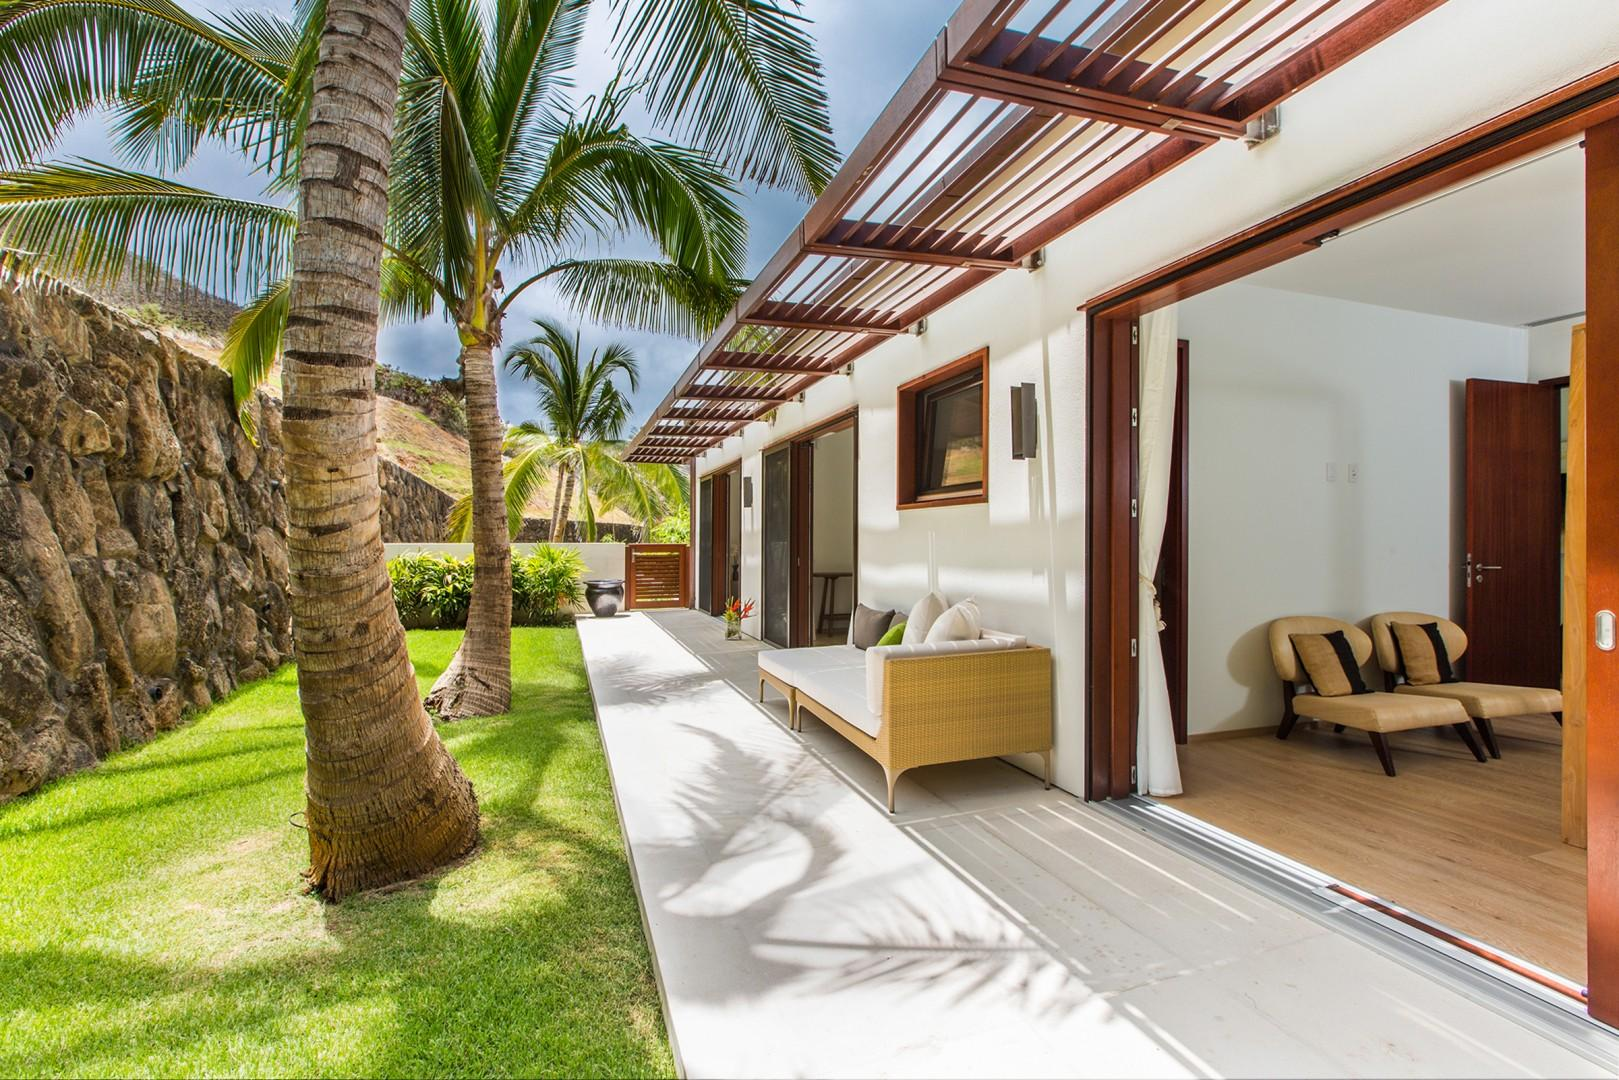 Guest Bedrooms shared lanai with mountain views